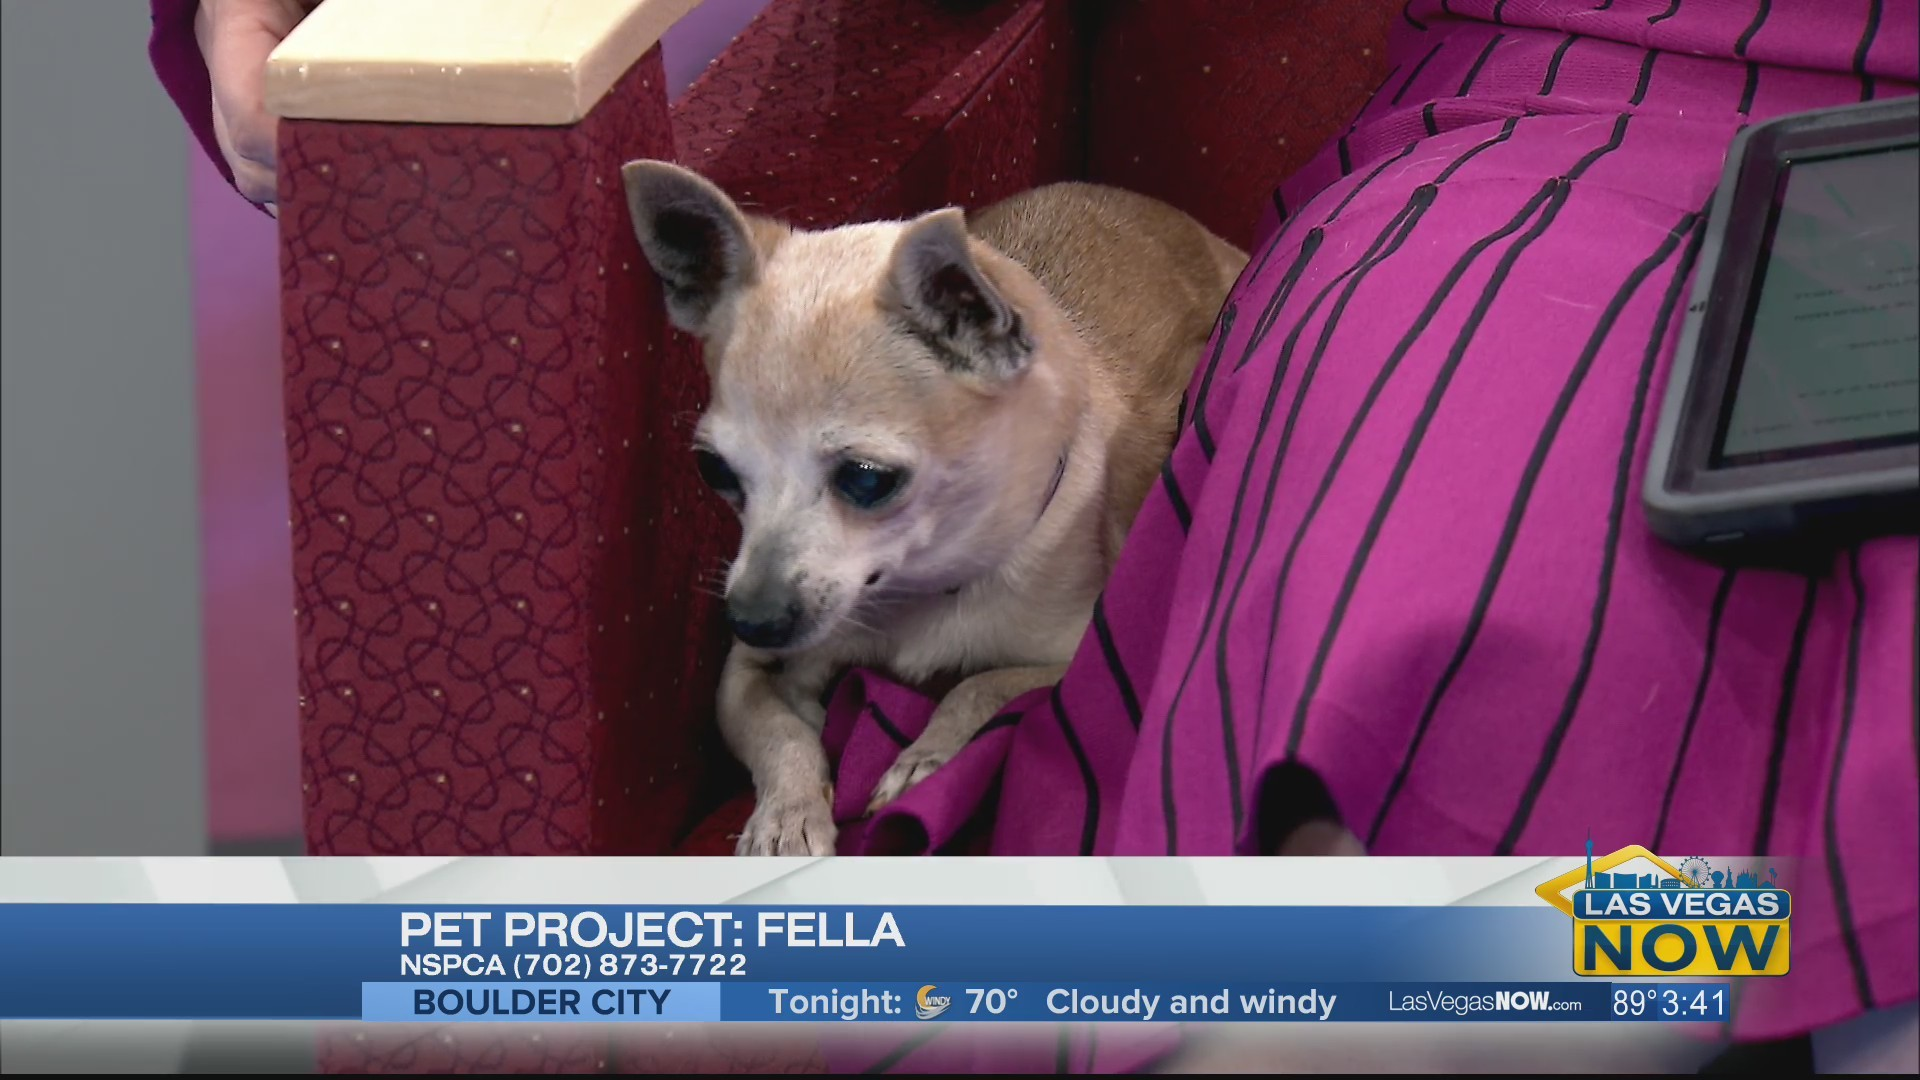 Fella the dog is looking for a forever home